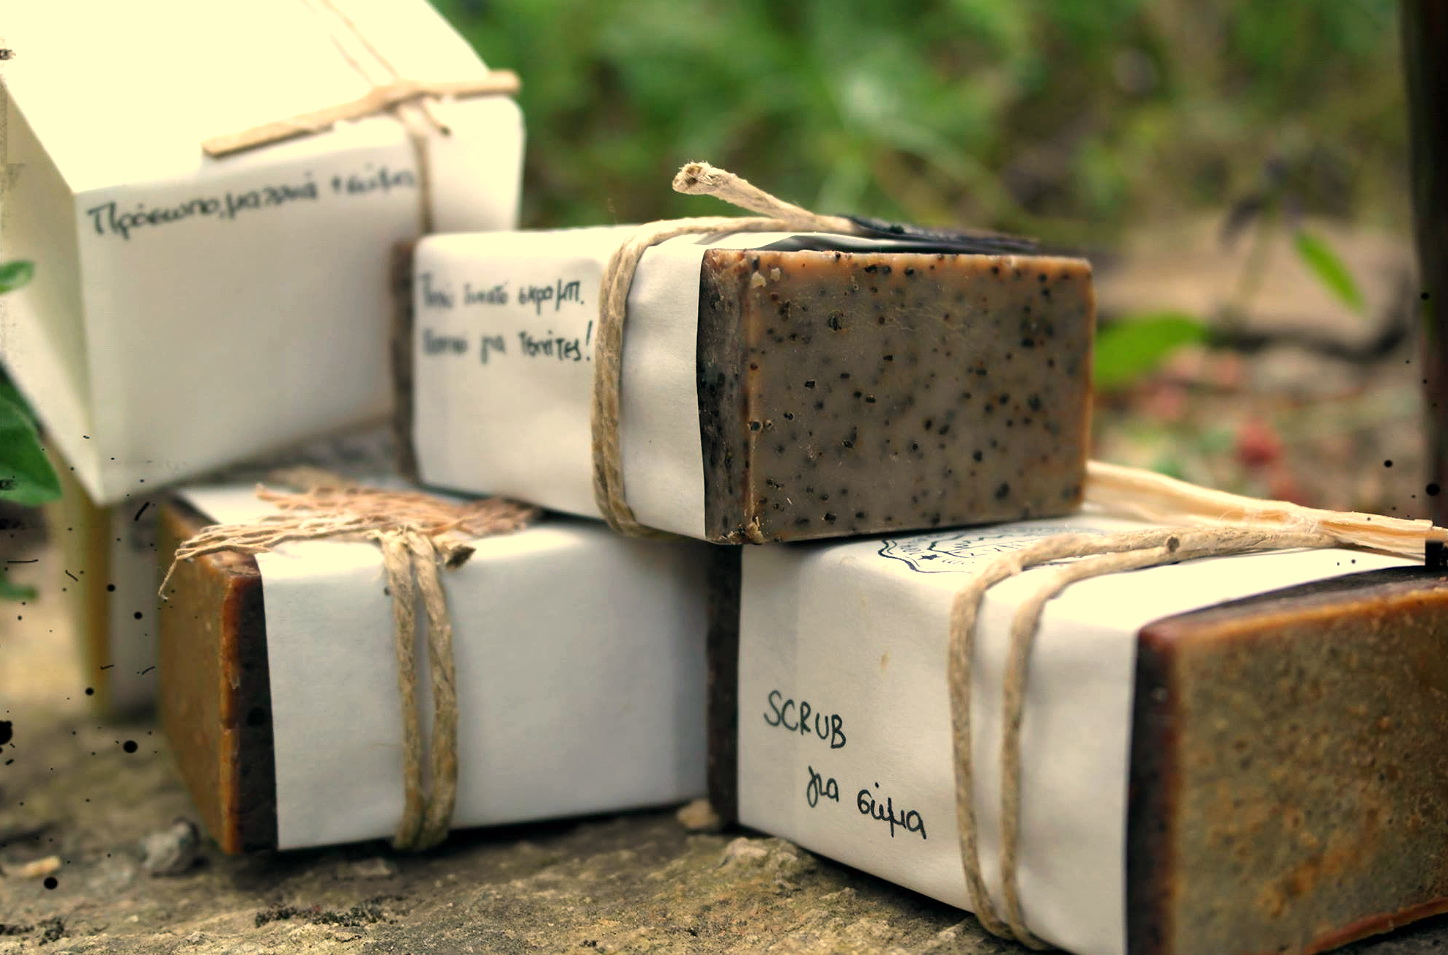 Workshop with handmade natural soaps